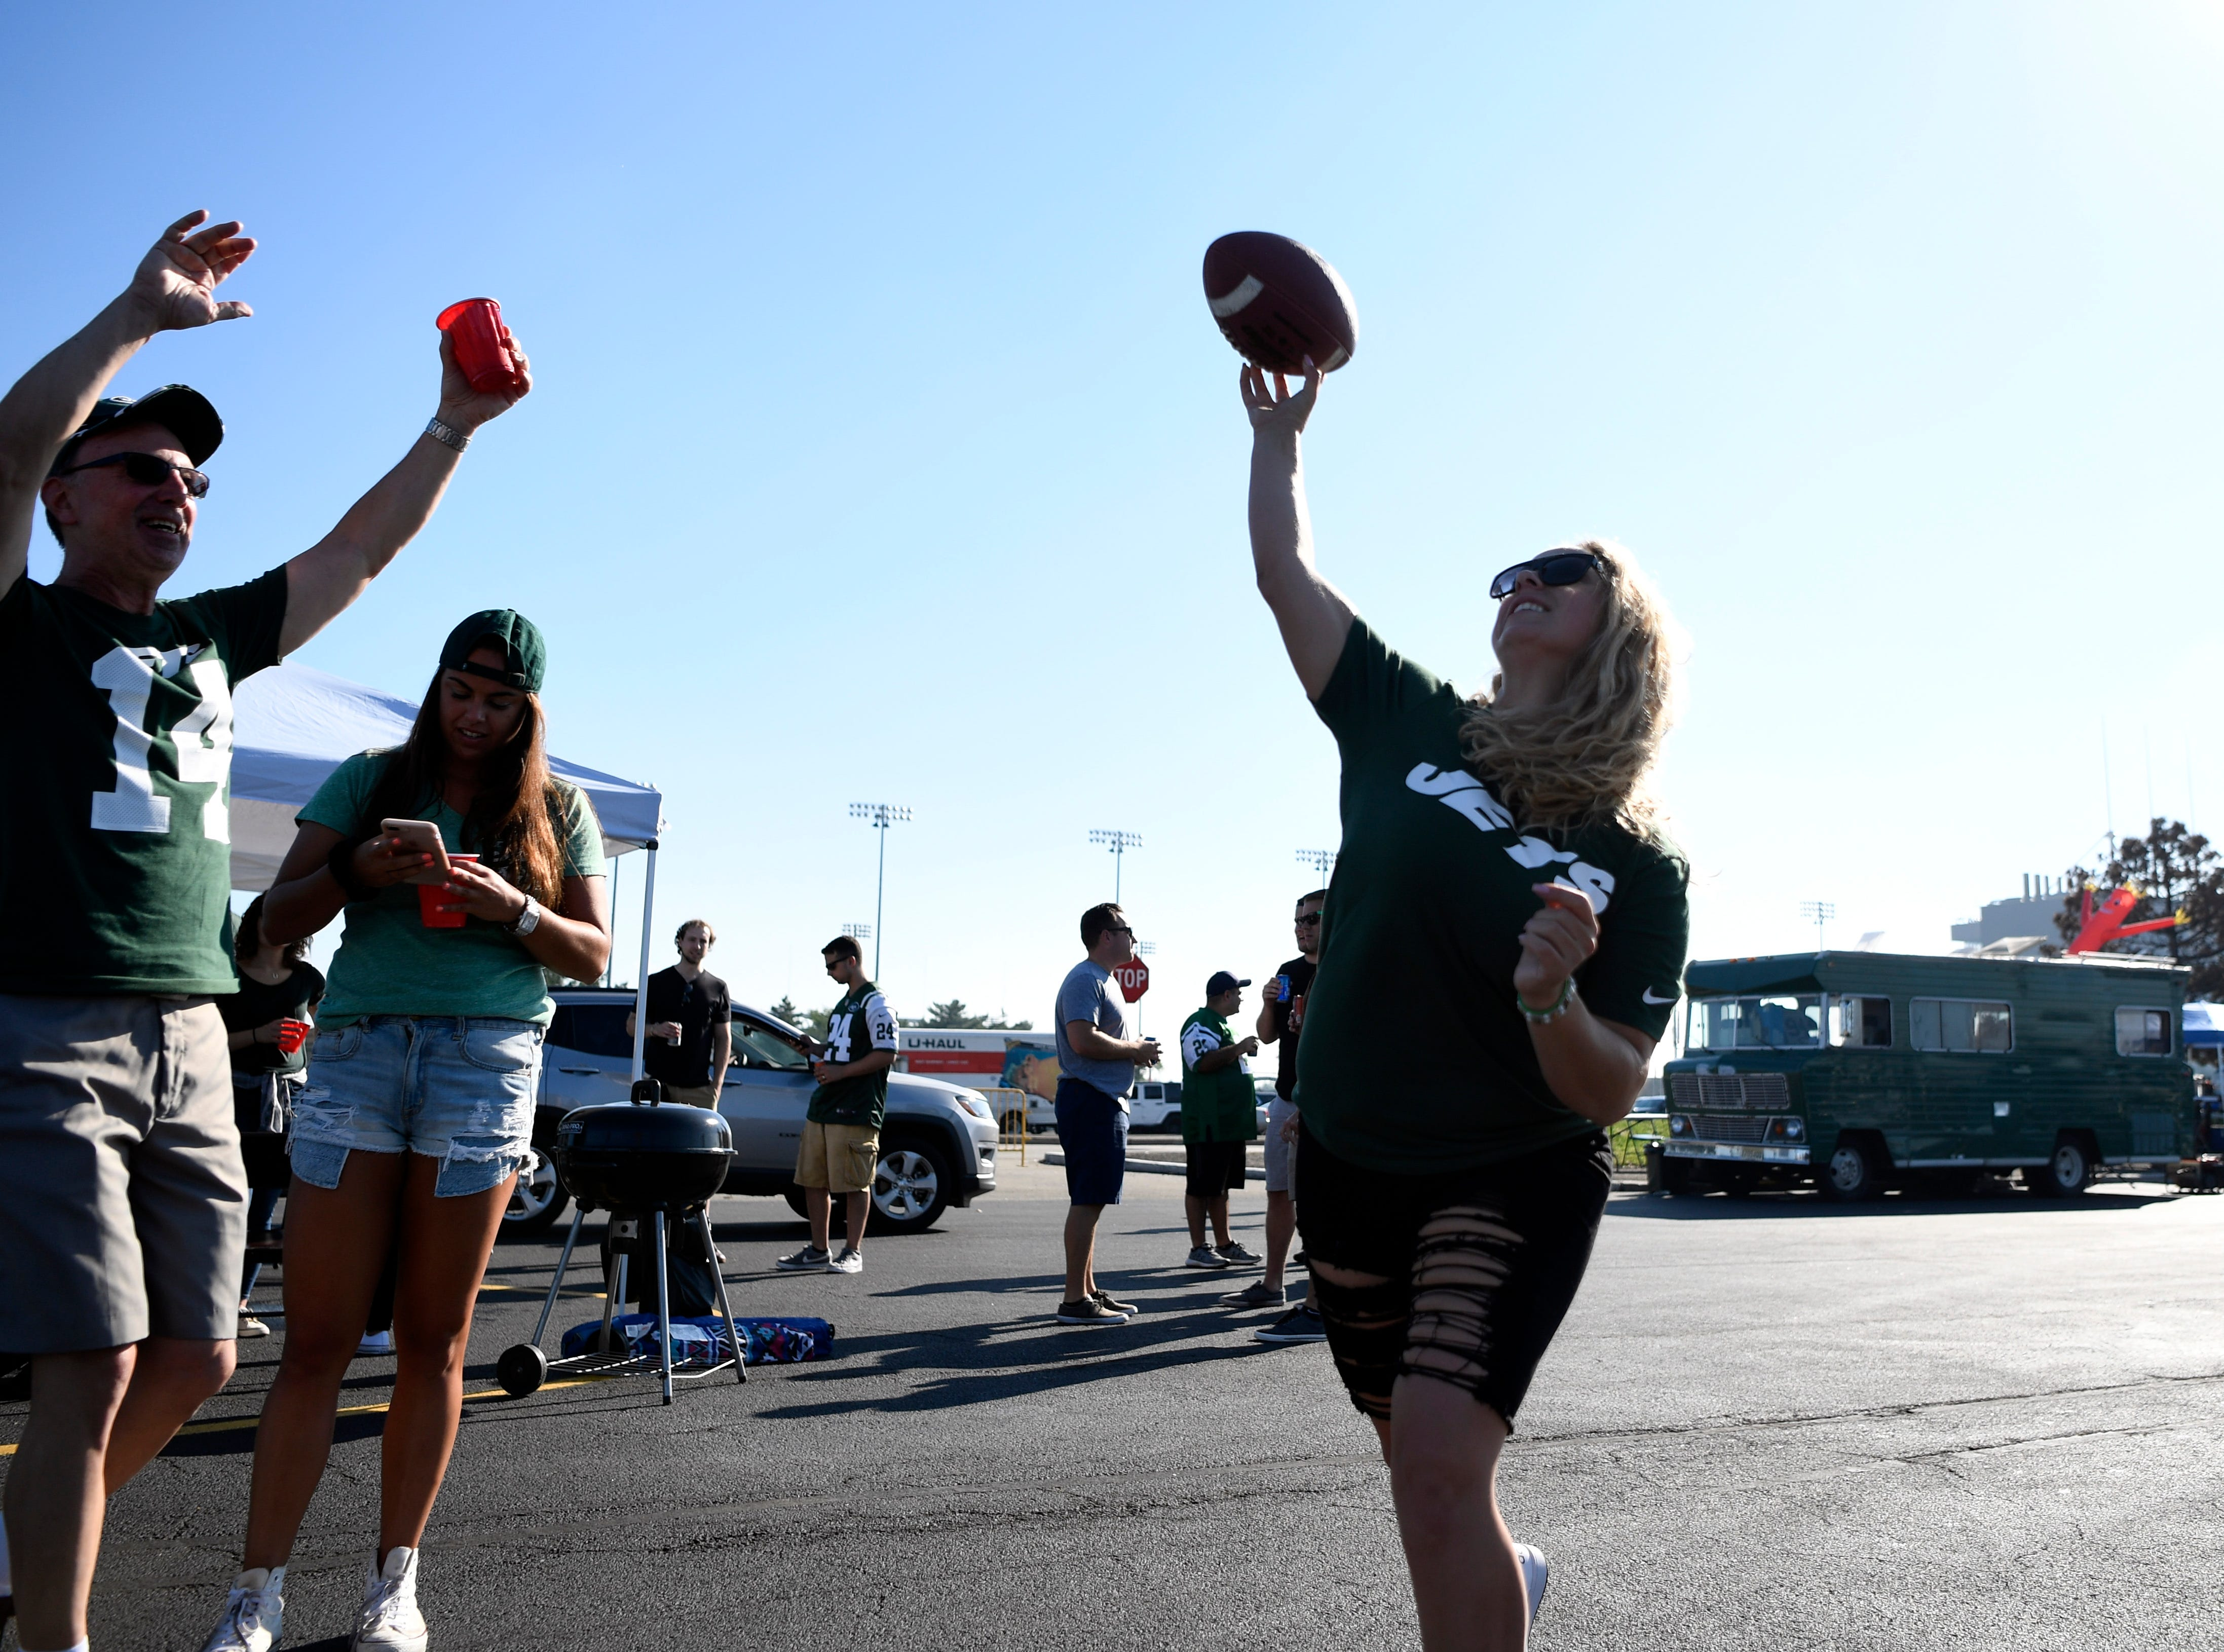 Ally Vergona, right, throws the football as Ed Buffalo, both of Paramus, pretends to block her. New York Jets face the Miami Dolphins in Week 2 at MetLife Stadium in East Rutherford, NJ on Sunday, September 16, 2018.